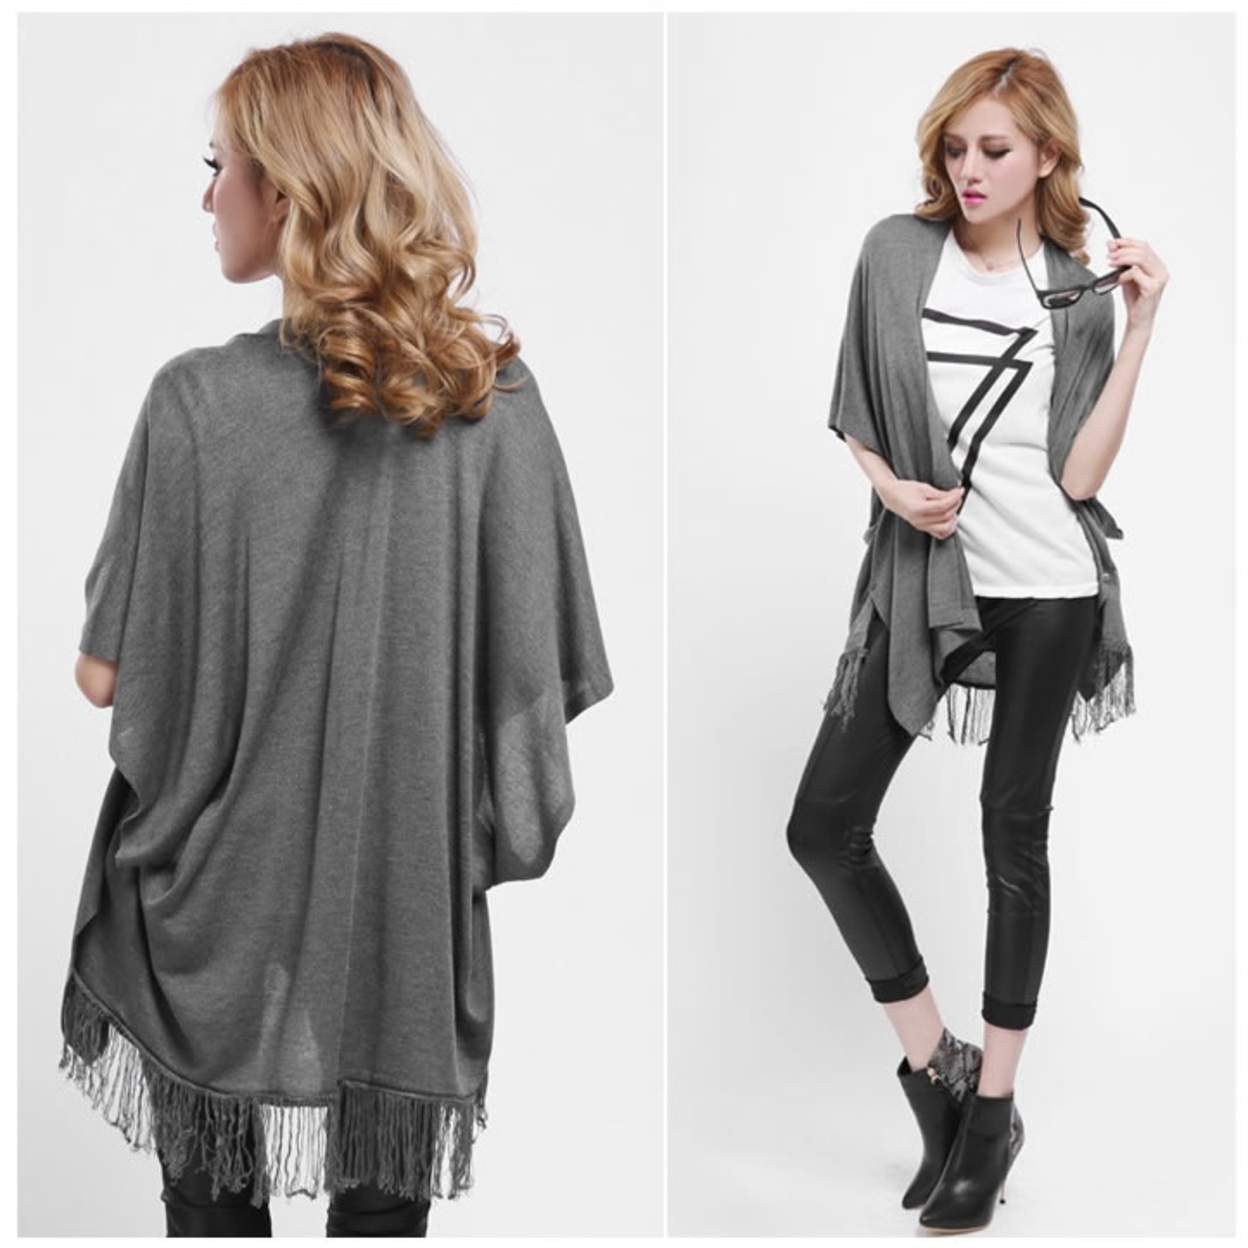 Retro Wrap Poncho With Fringe Benefits - Olive Green 556f63a1483d6f2a038b478e